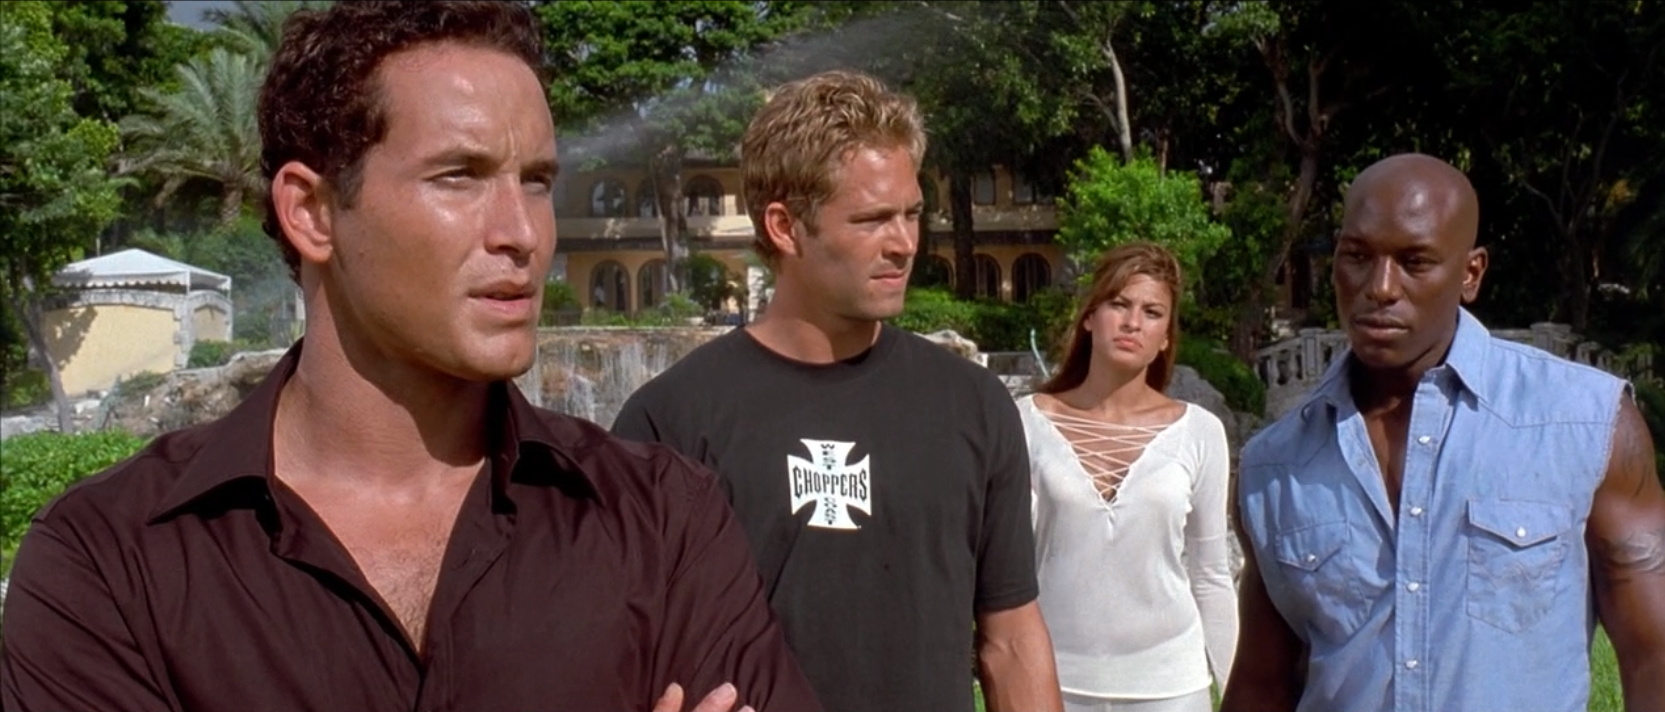 The 11 Moments That Defined Fast And The Furious